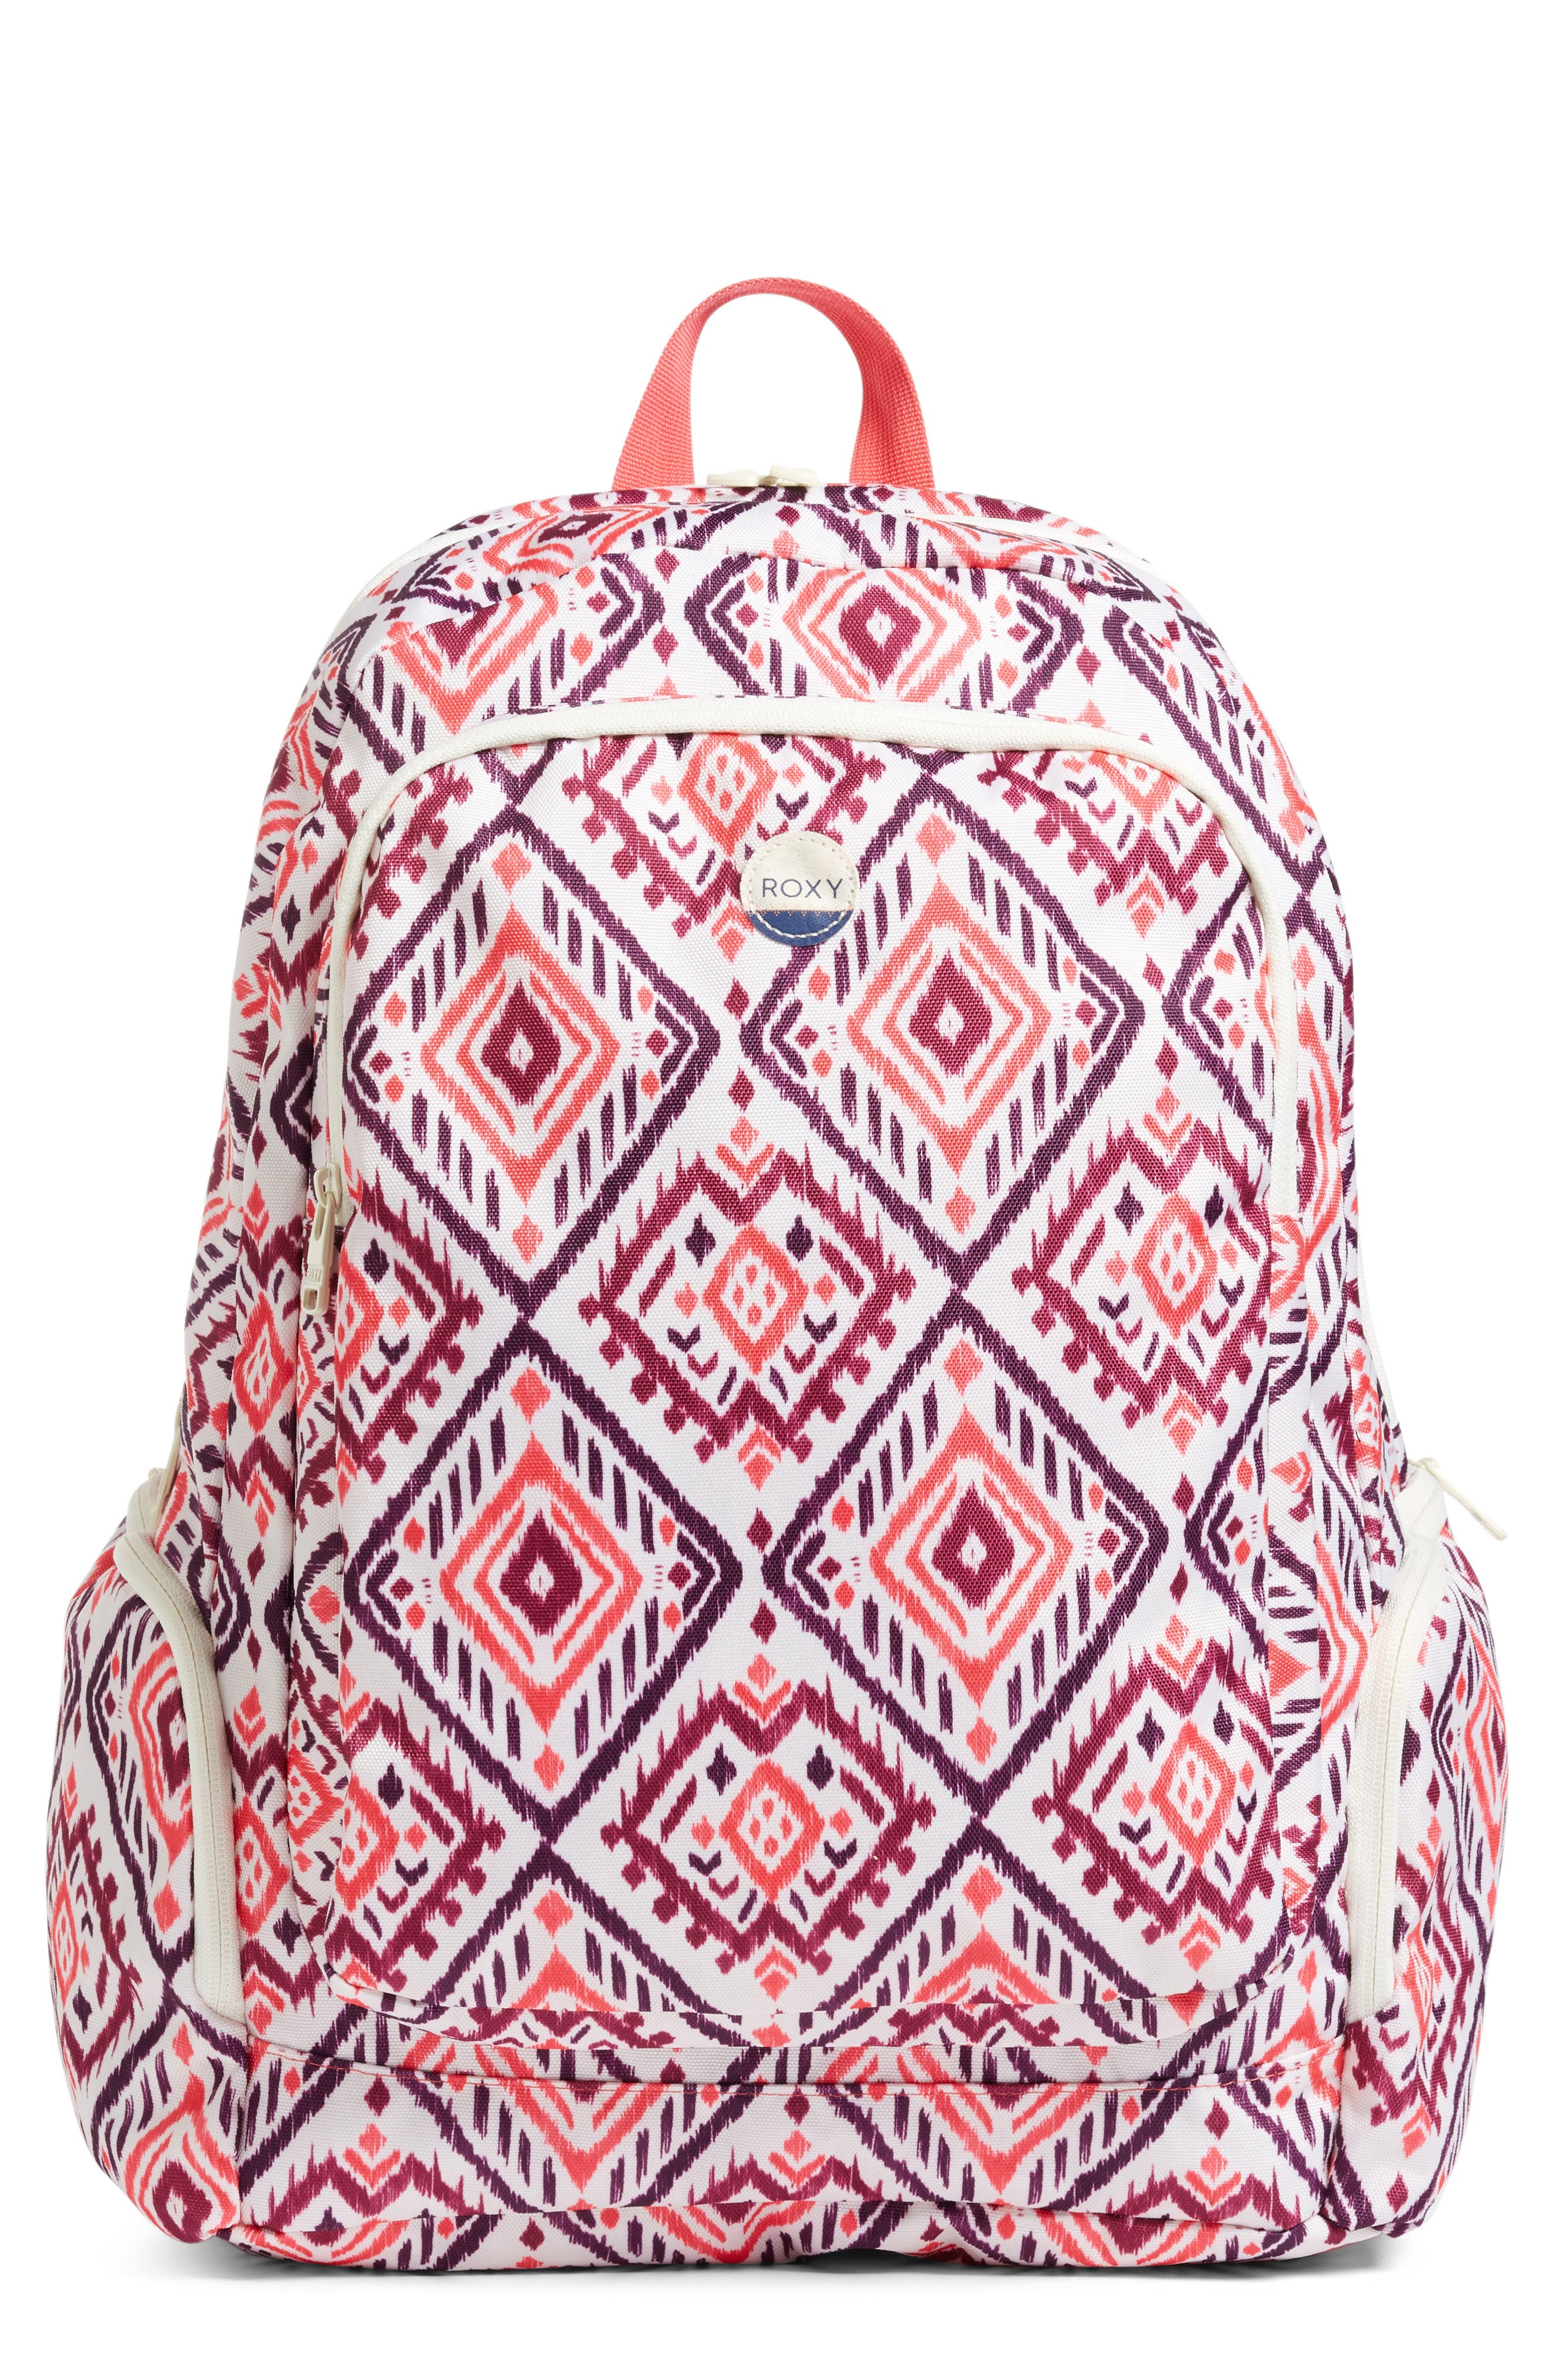 Alternate Image 1 Selected - Roxy Alright Print Backpack